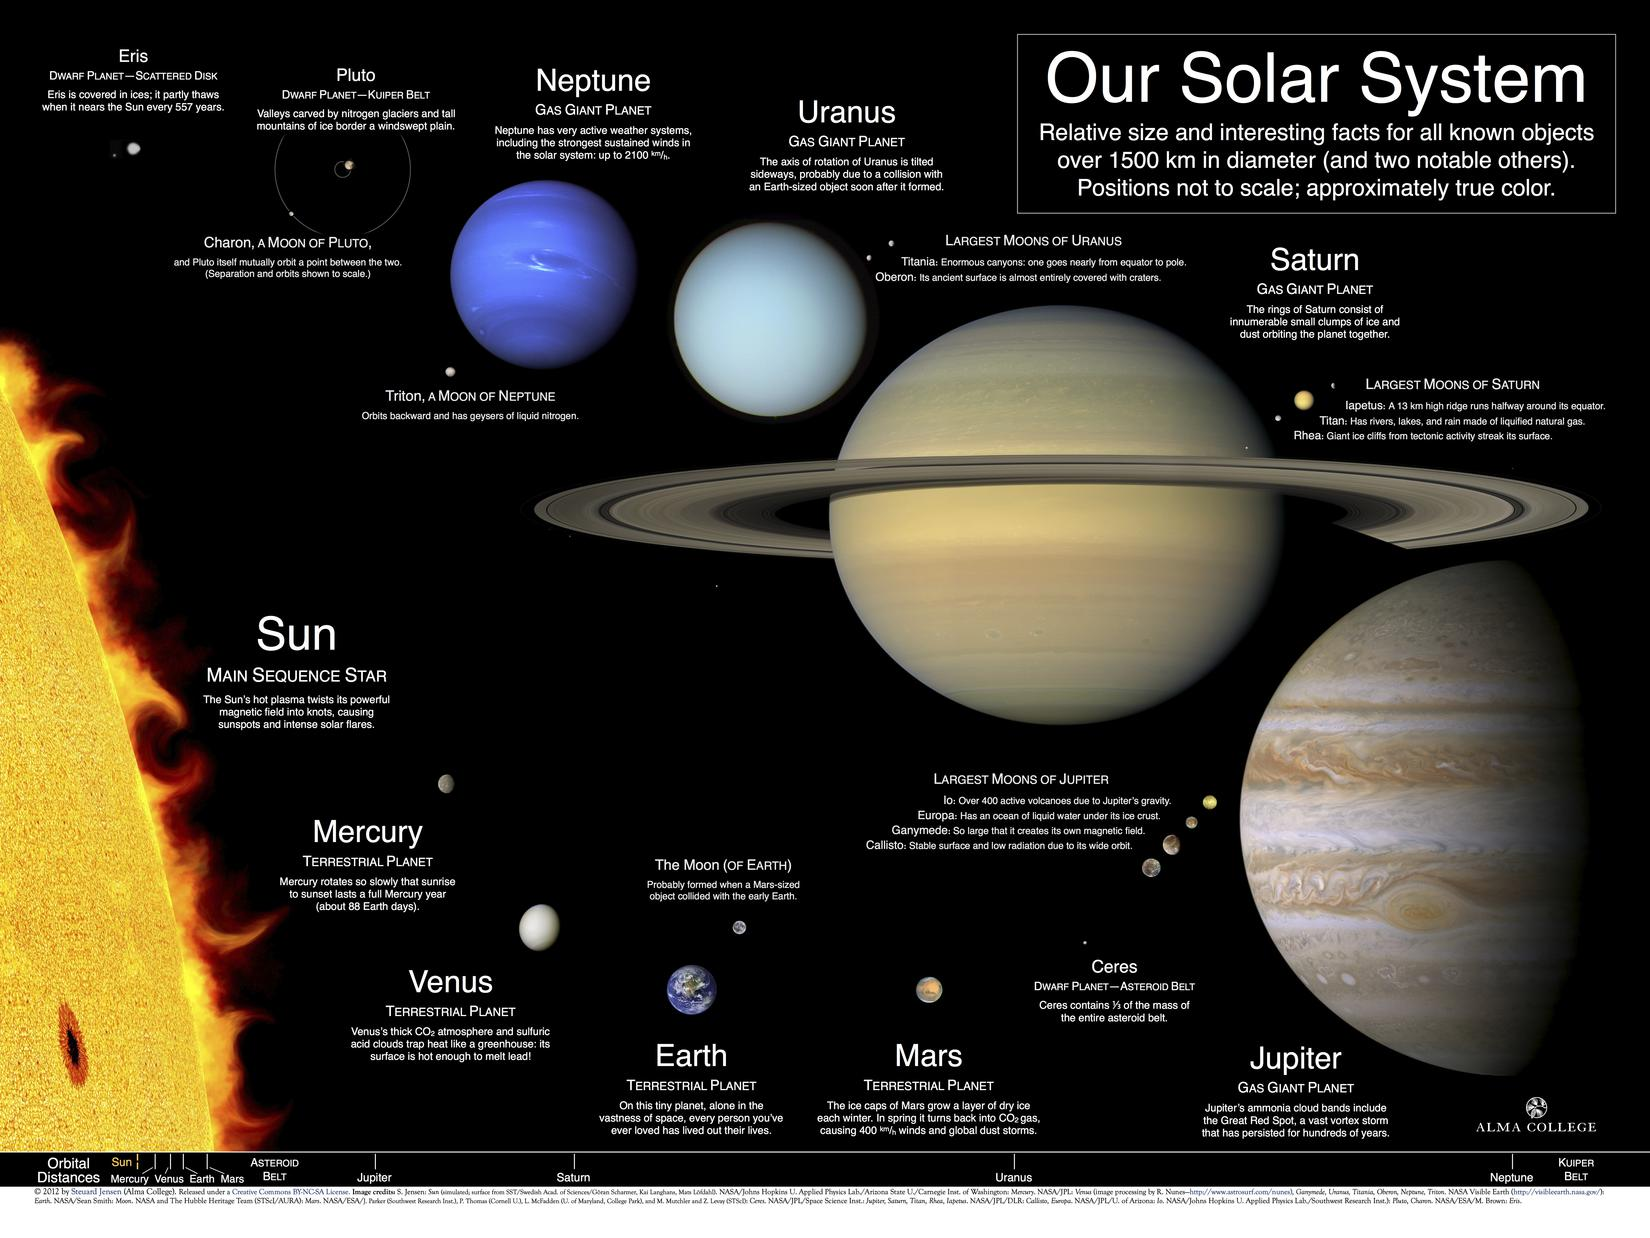 info about the solar system - photo #5